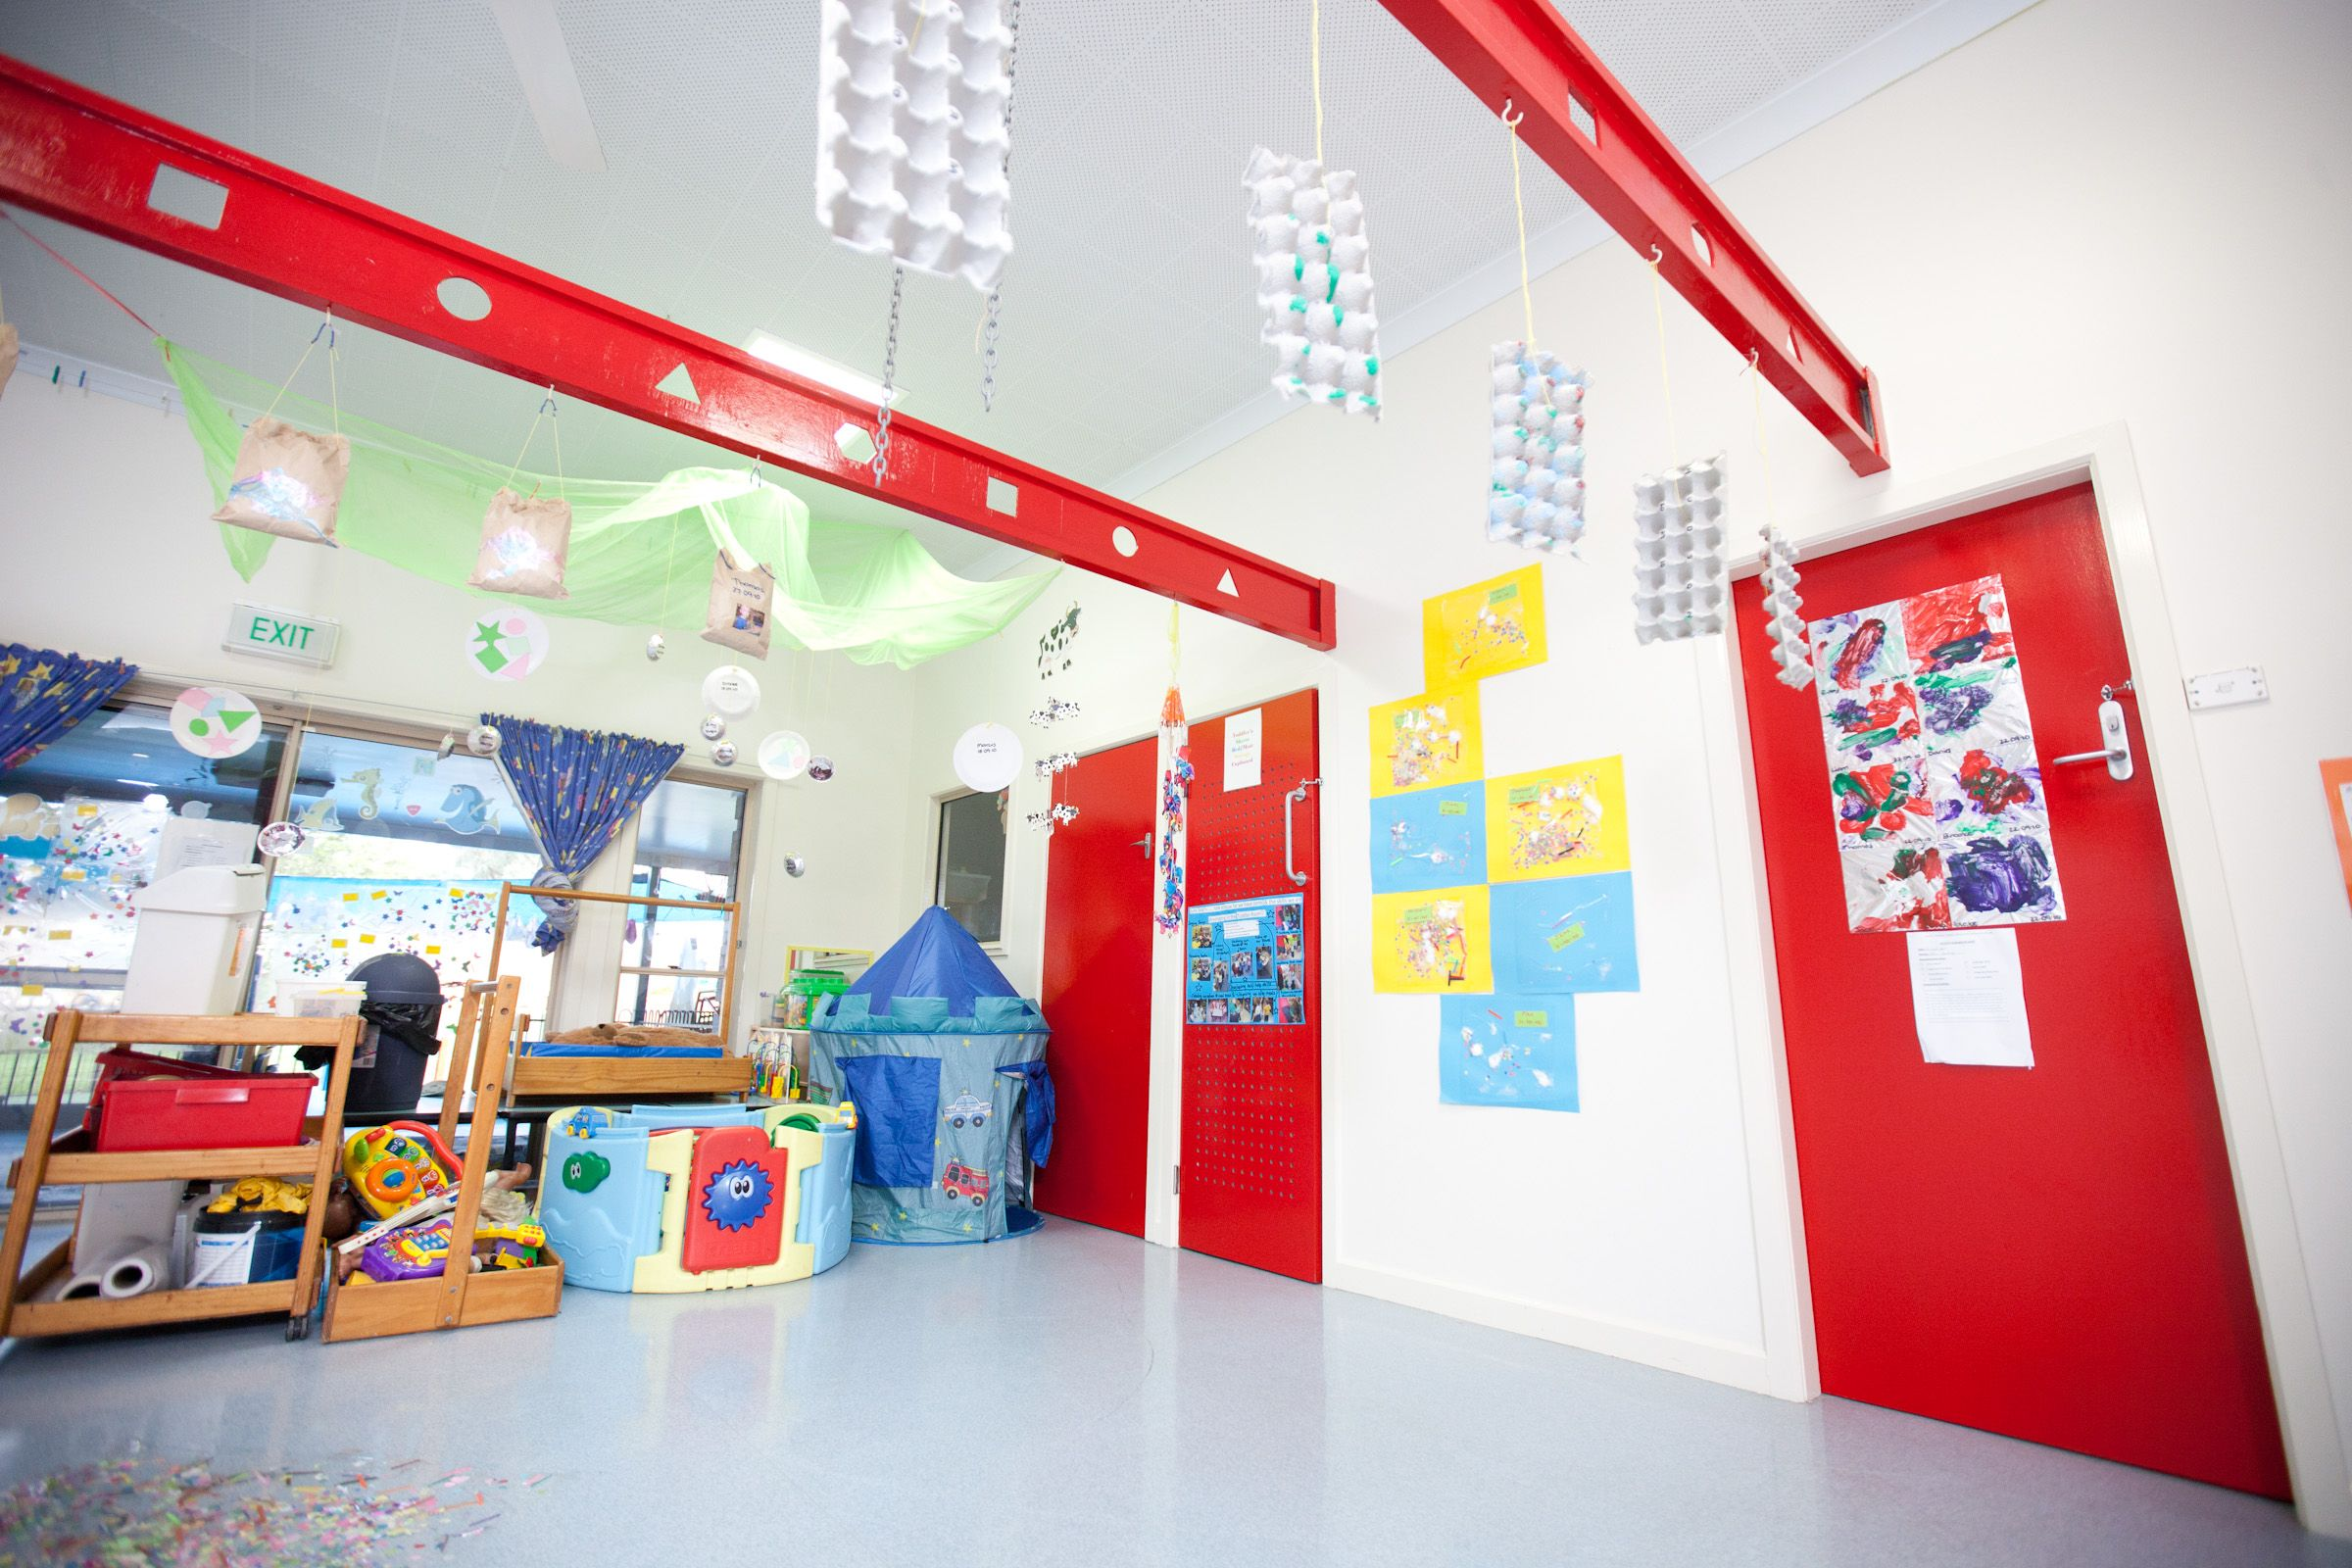 commercial painting - interior school building